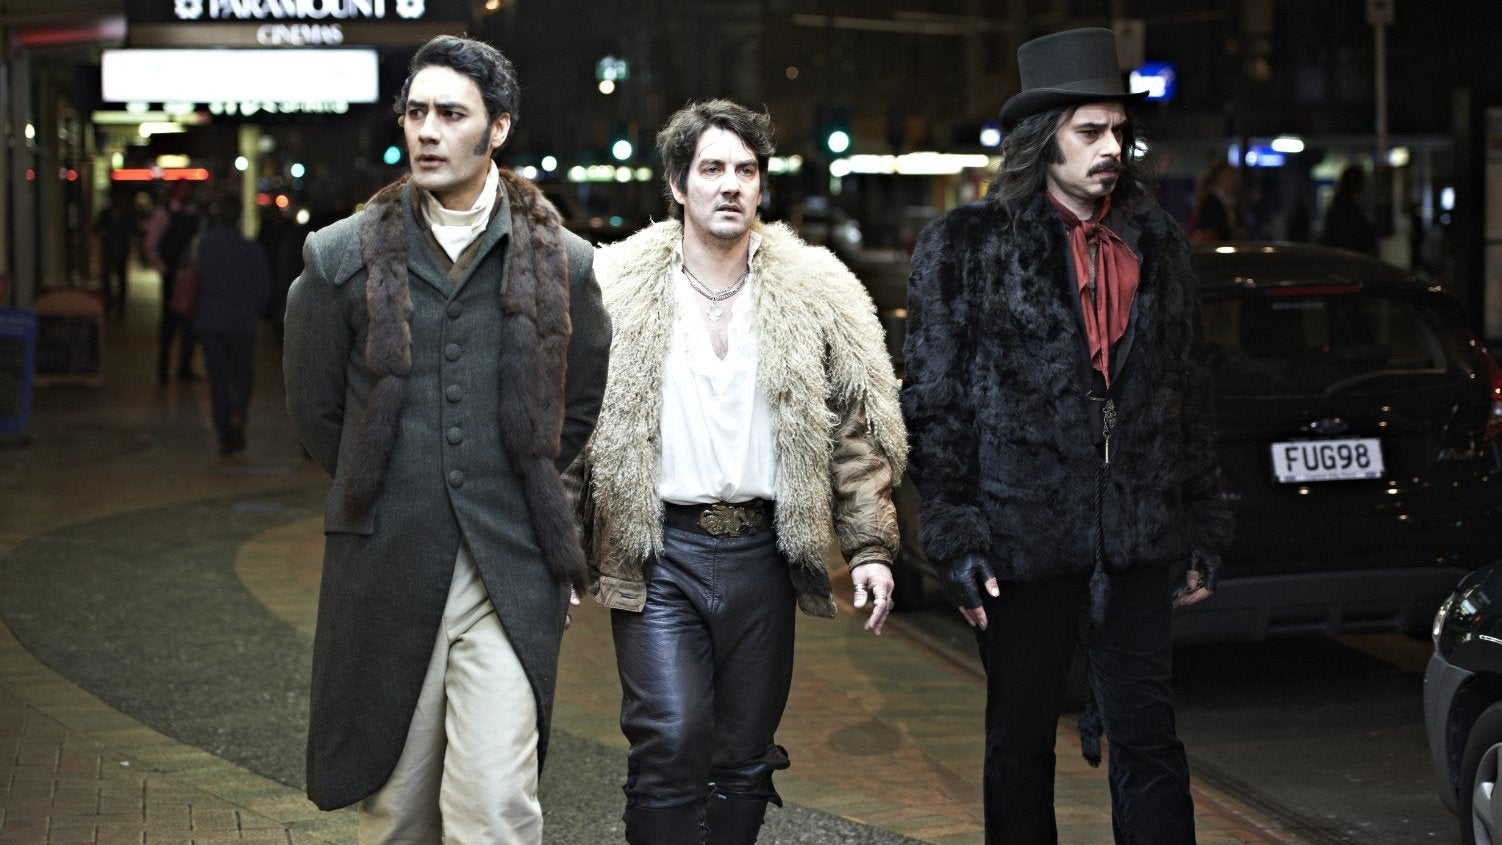 The Brilliant Vampire Comedy What We Do In The Shadows May Get An American TV Remake